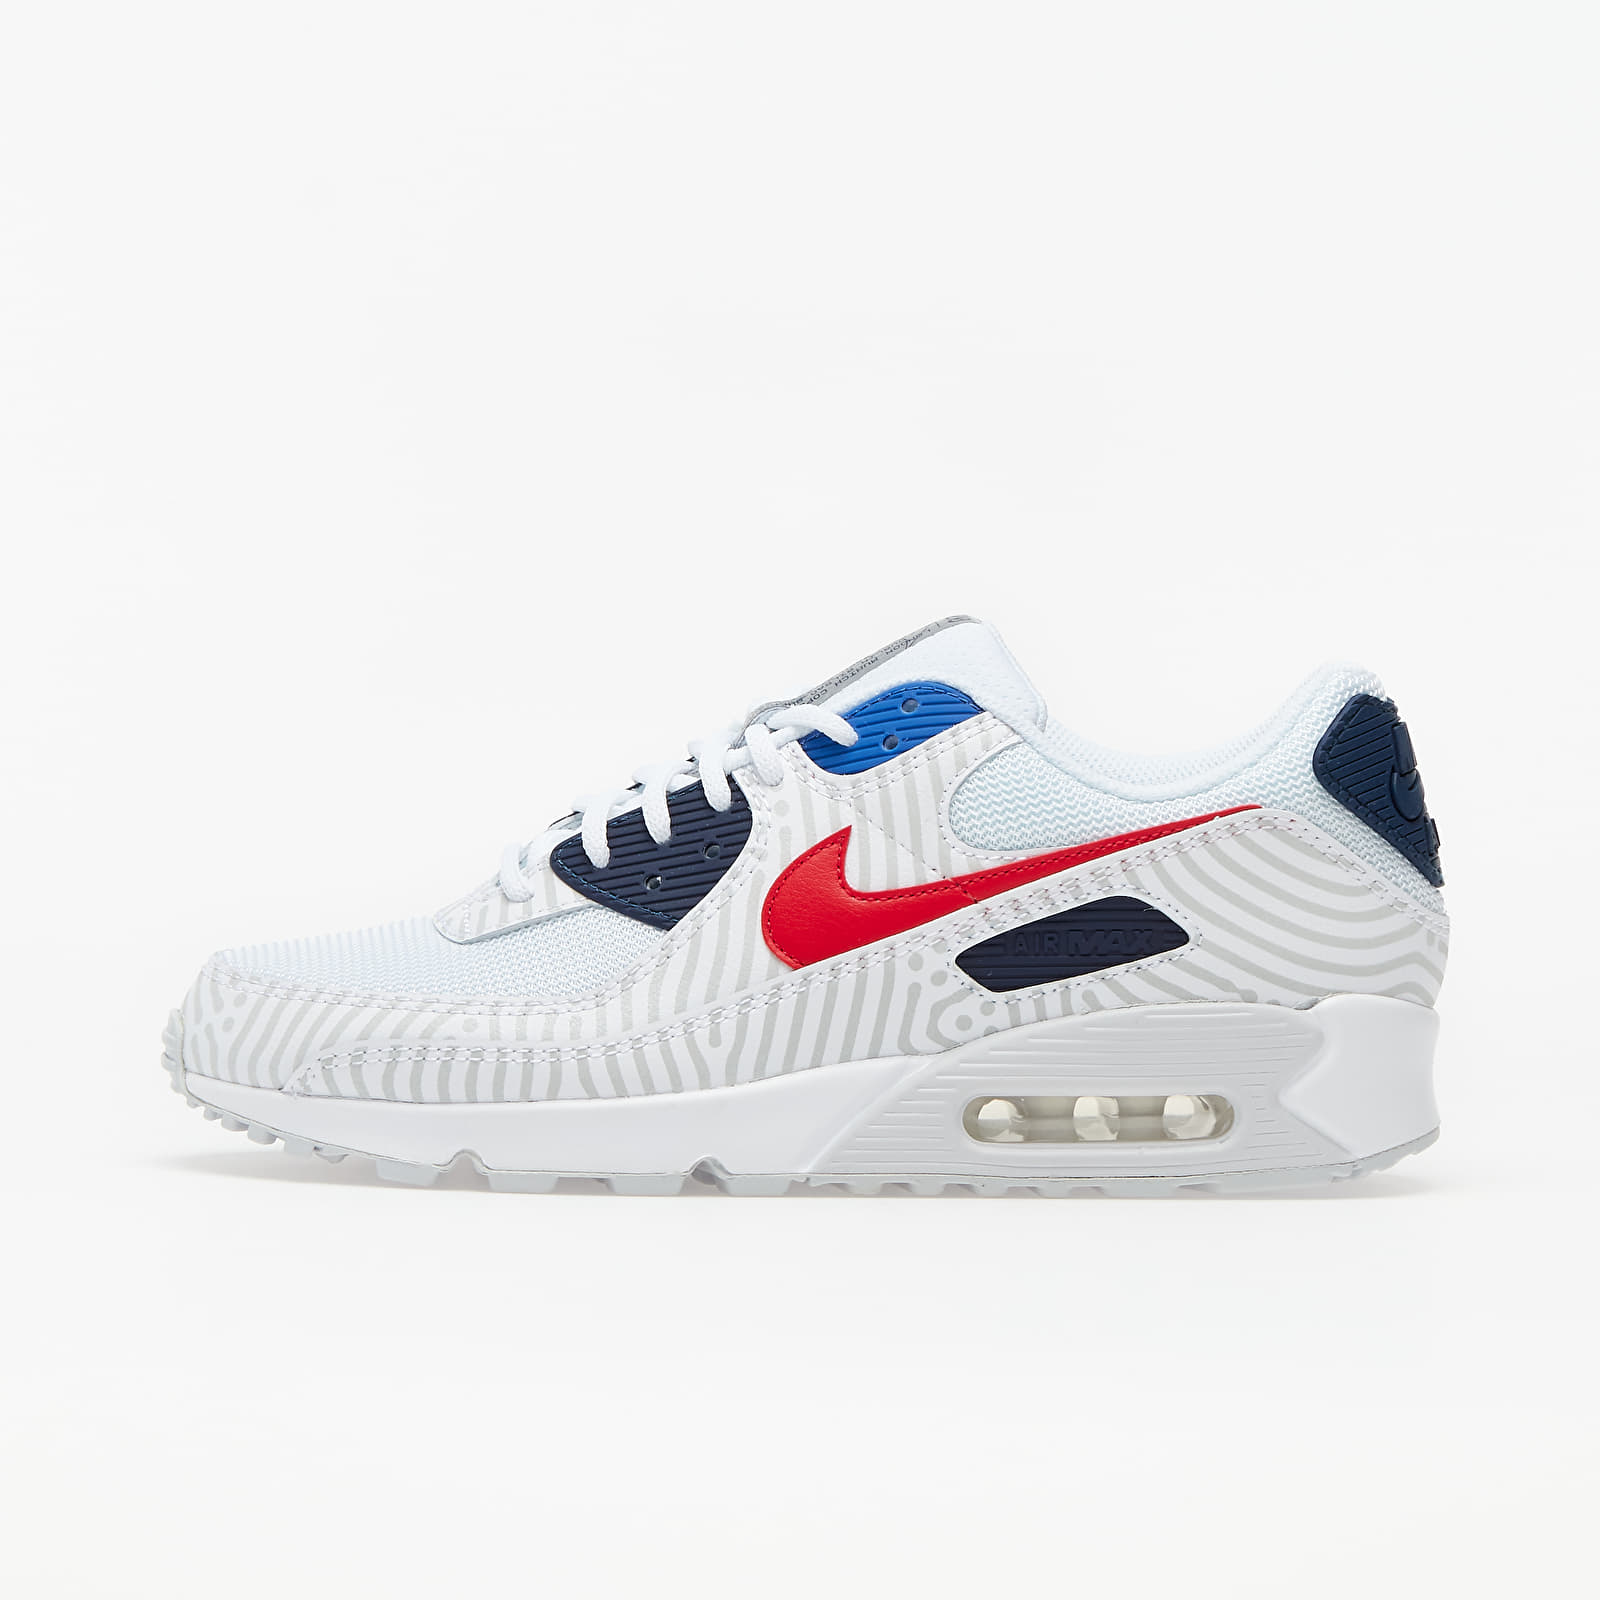 Nike Air Max 90 White/ University Red-Midnight Navy CW7574-100